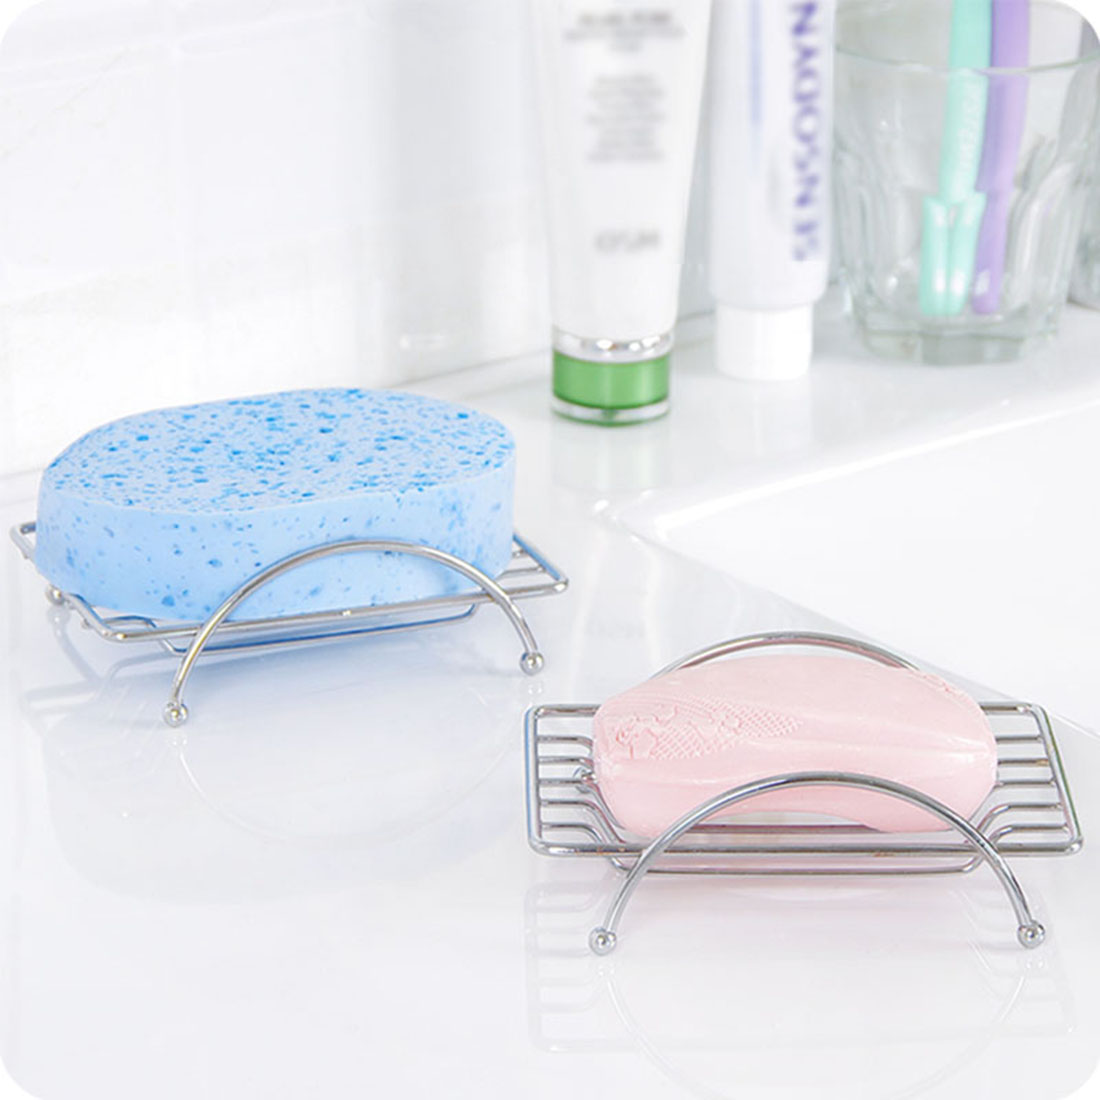 Stainless Steel Soap Dishes Soap Holder Case Brand Bathroom Accessories Rust-resistant Saver Basket for Bathroom Toilet Shower